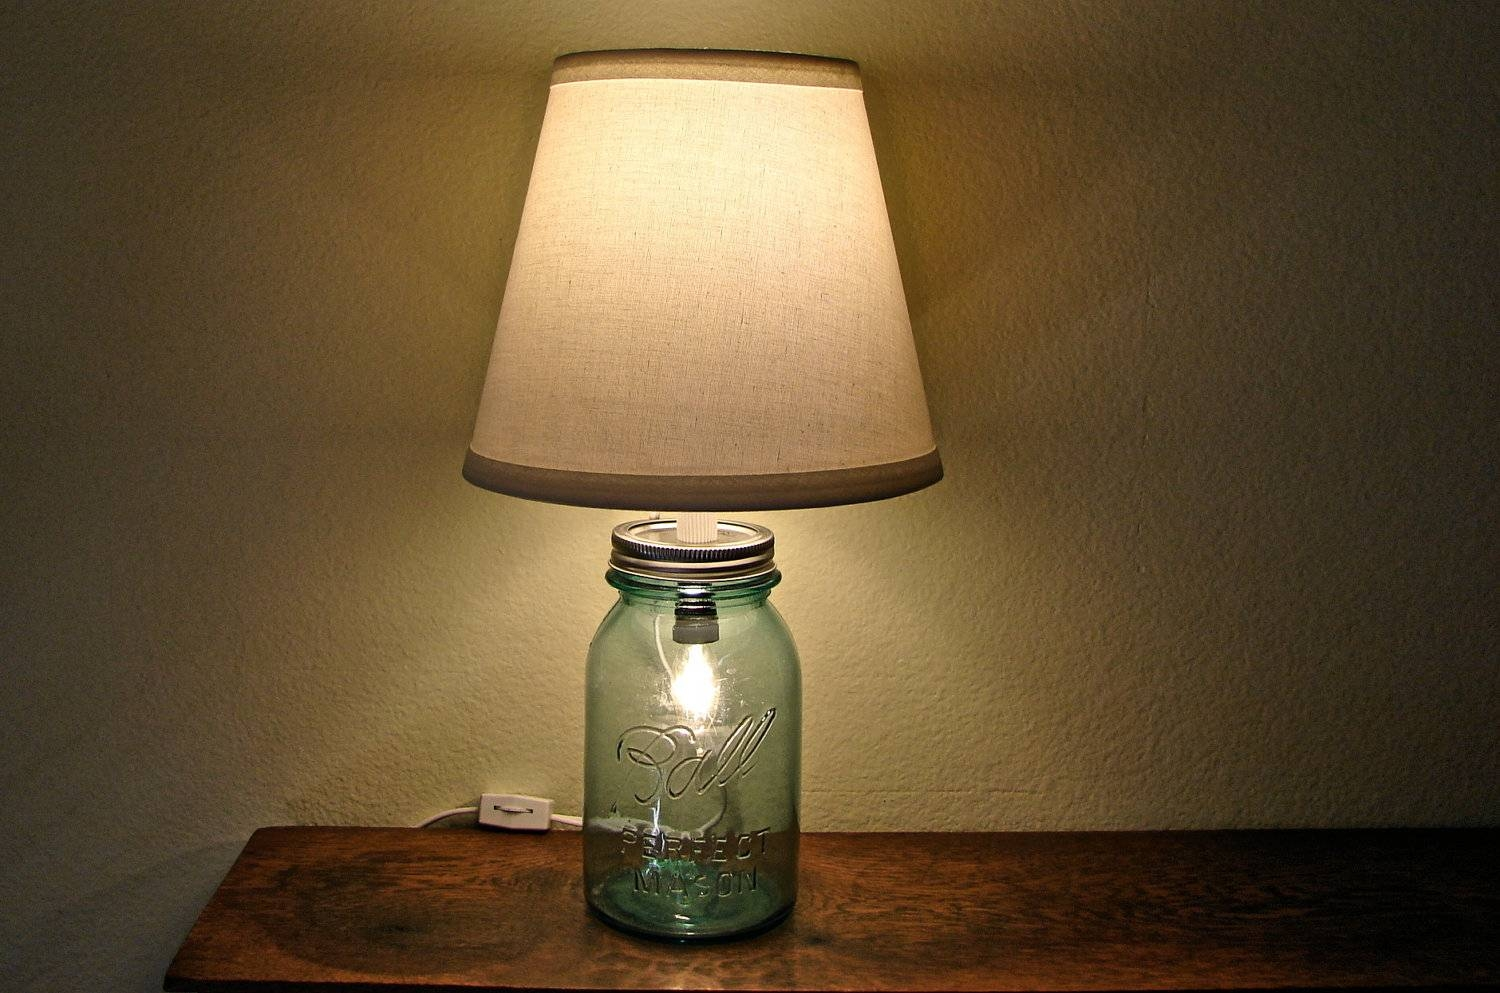 Discount Vintage Blue Mason Jar Table Lamp No Shade Two with regard to Blue Mason Jar Lights Fixtures (Image 3 of 15)